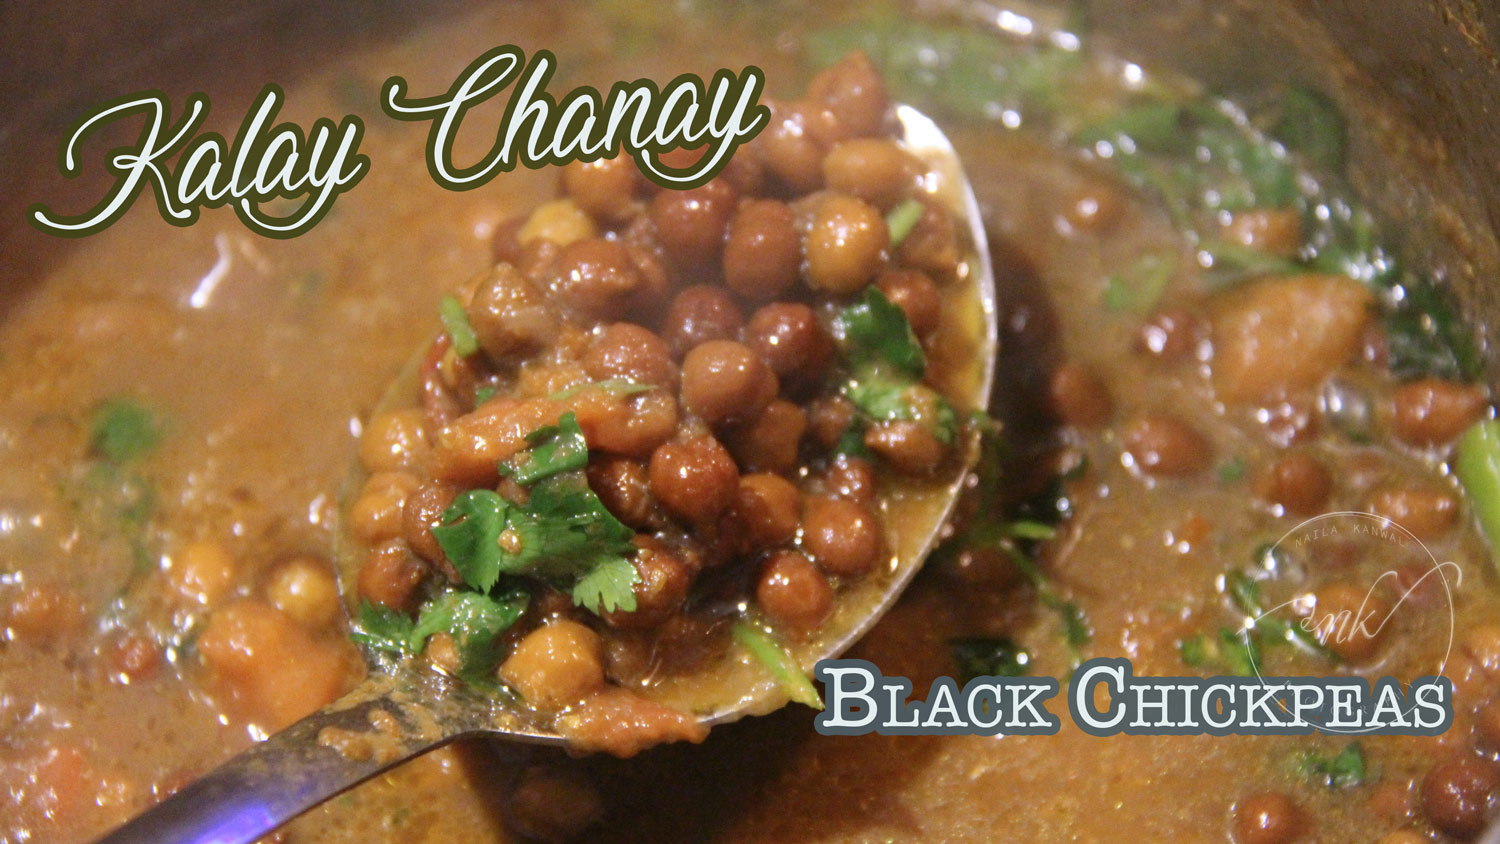 Kalay Chanay کالے چنے | No Pressure Cooker Required | Garbanzo/Chickpeas